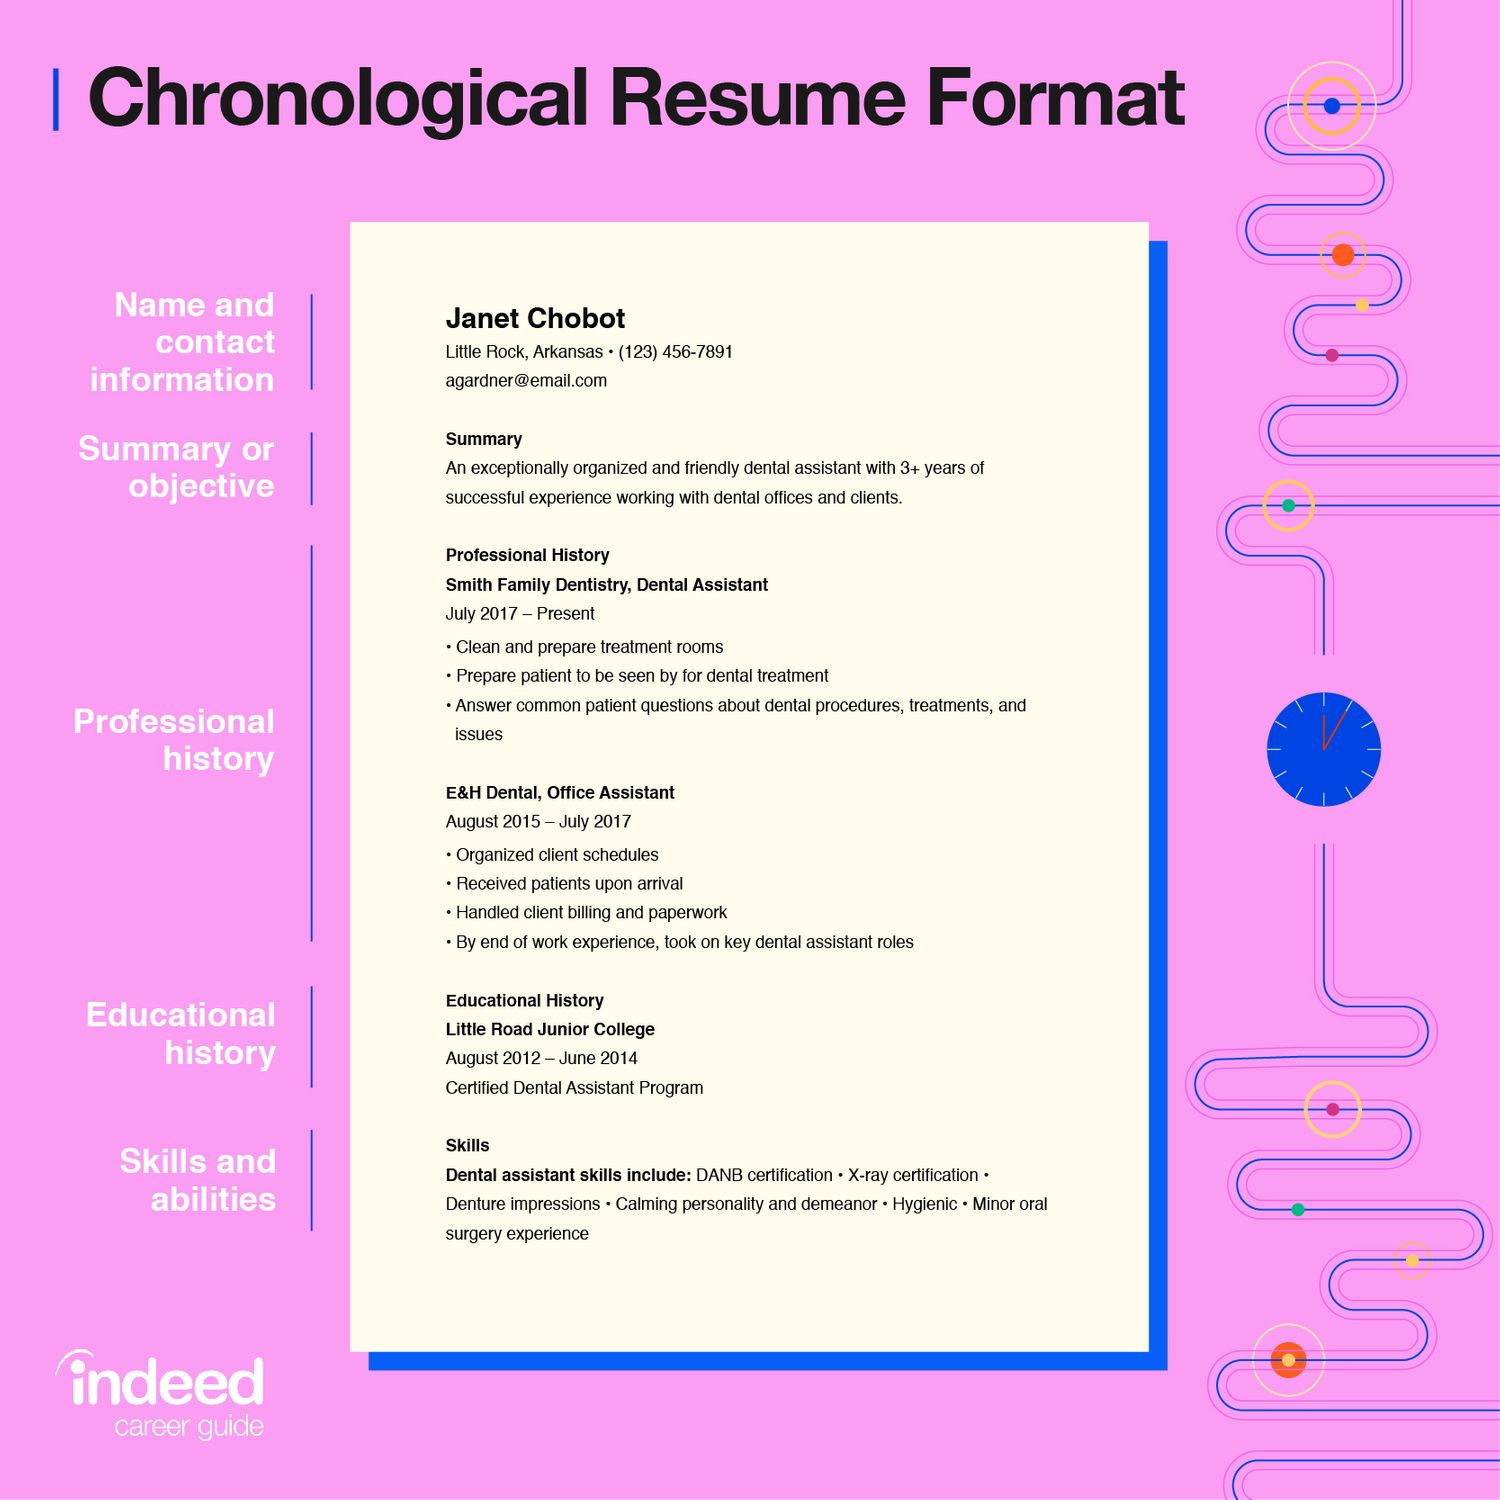 top resume formats tips and examples of three common resumes indeed best for it jobs Resume Best Resume For It Jobs